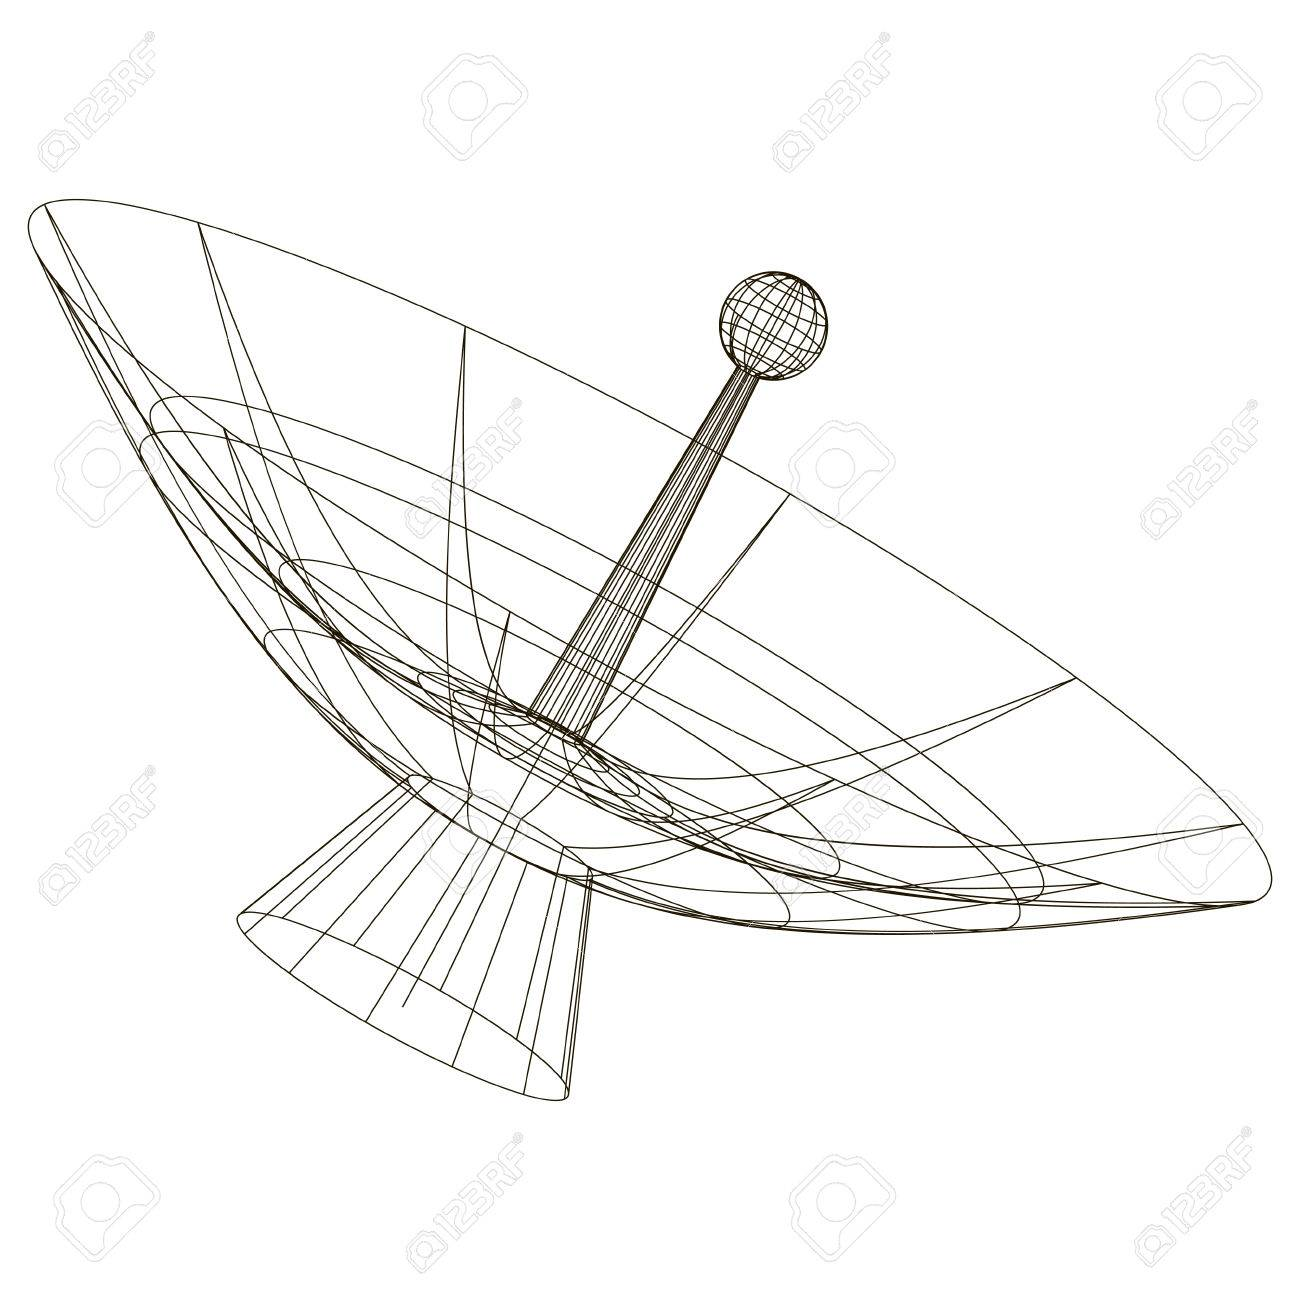 Antenna Tower Drawing At Getdrawings